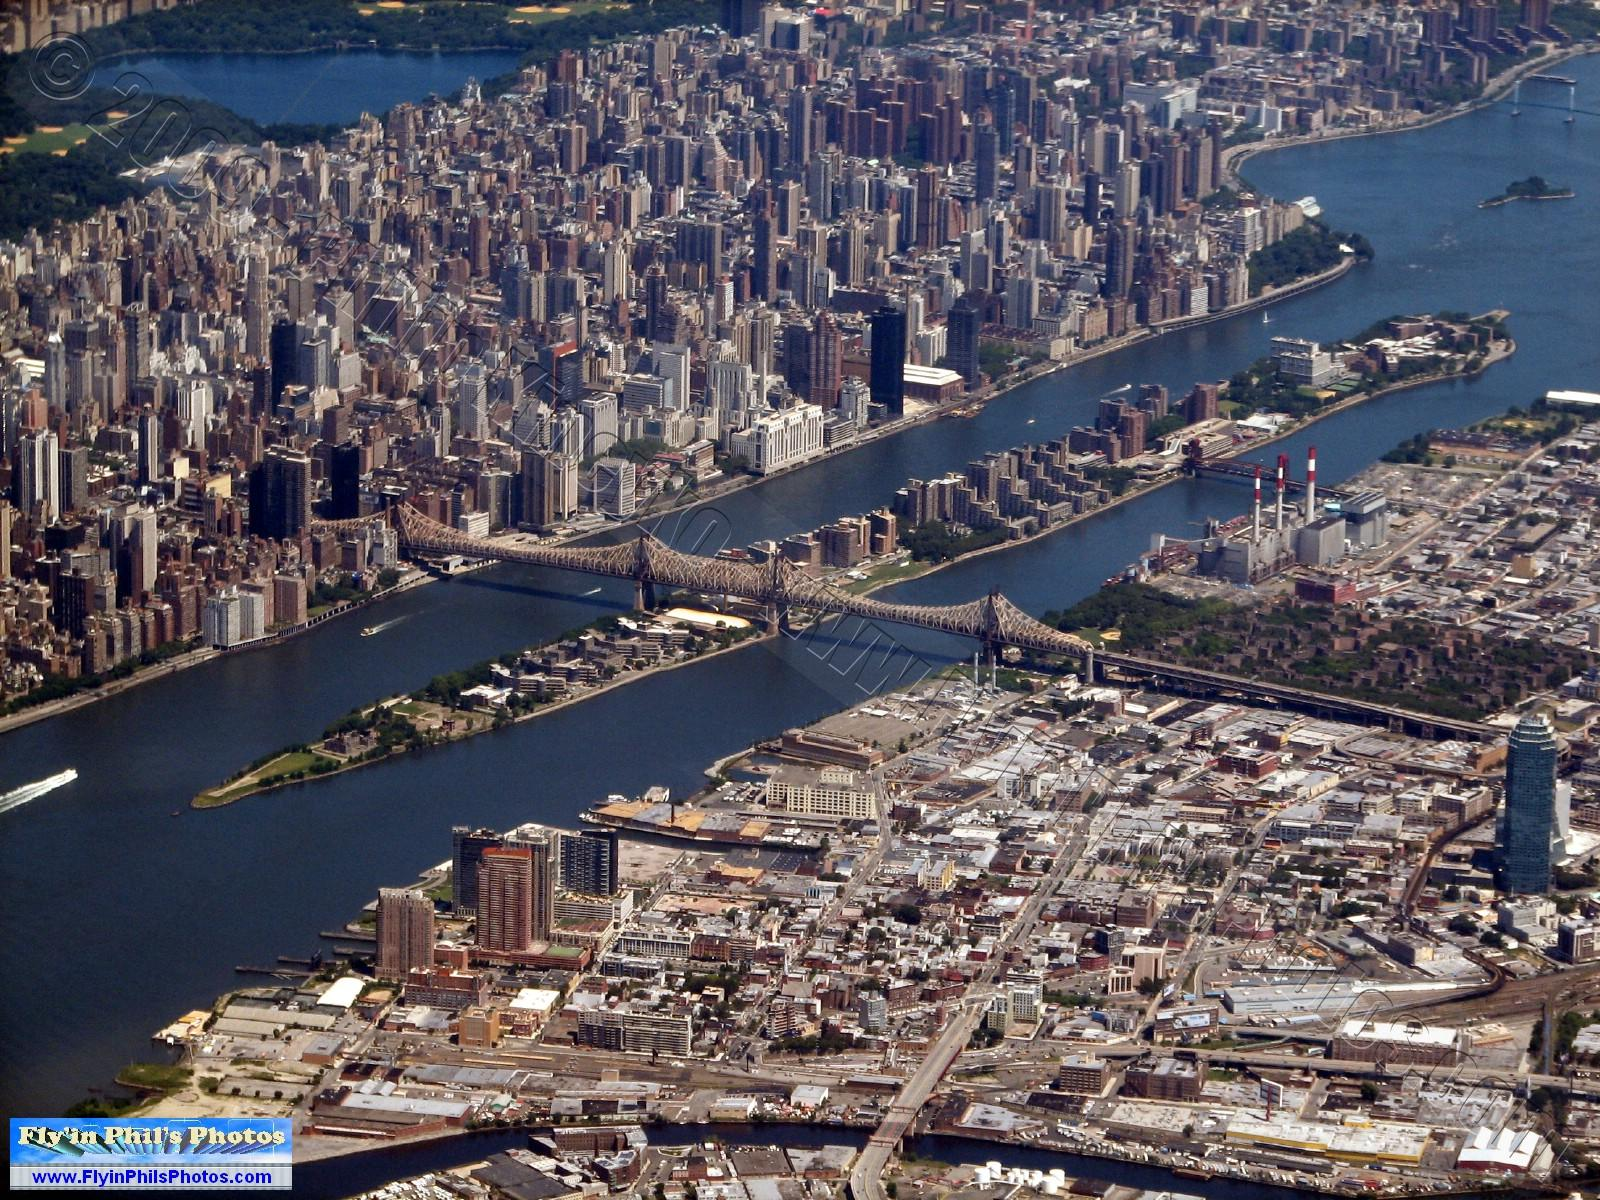 Long Island City Queens New York Hotels Motels Pictures To Pin On Pinterest